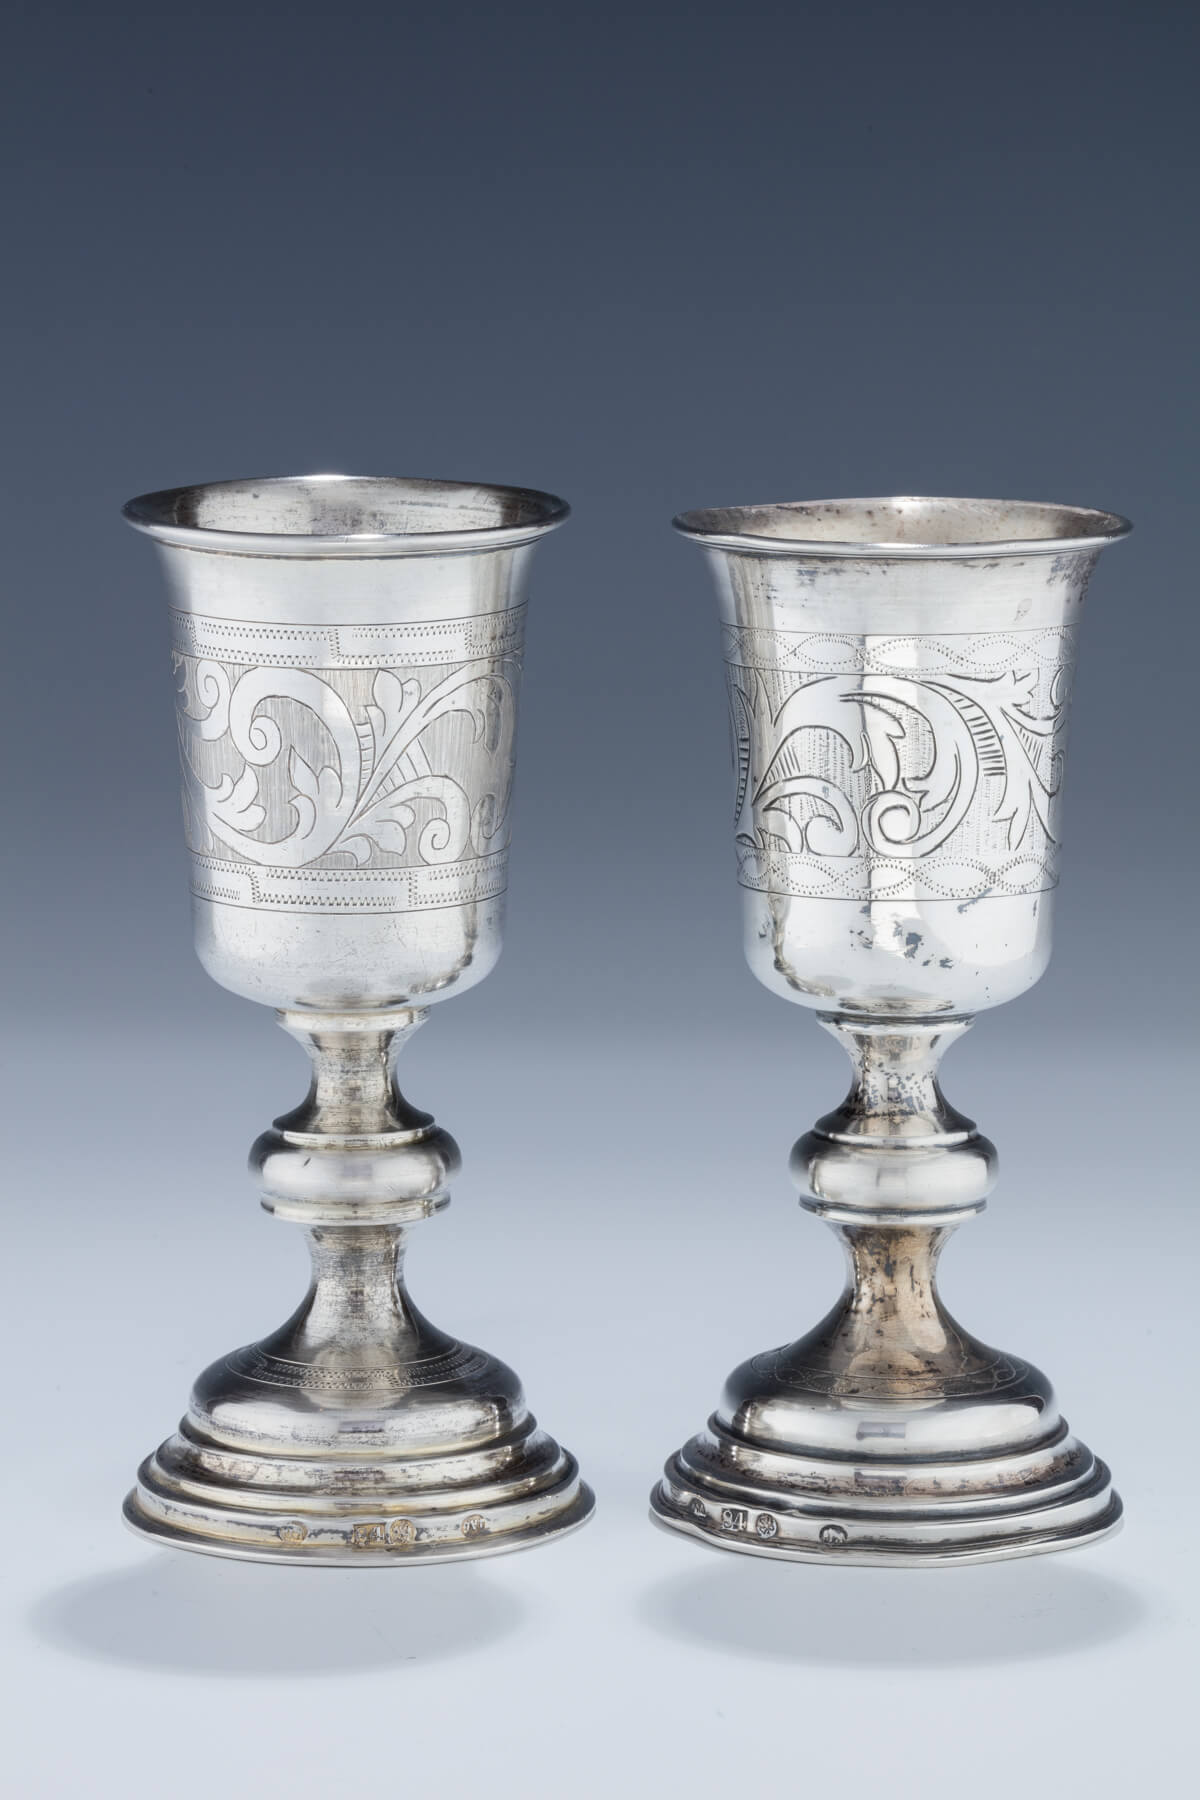 098. A Pair of Silver Kiddush Goblets by Isaac Goldman